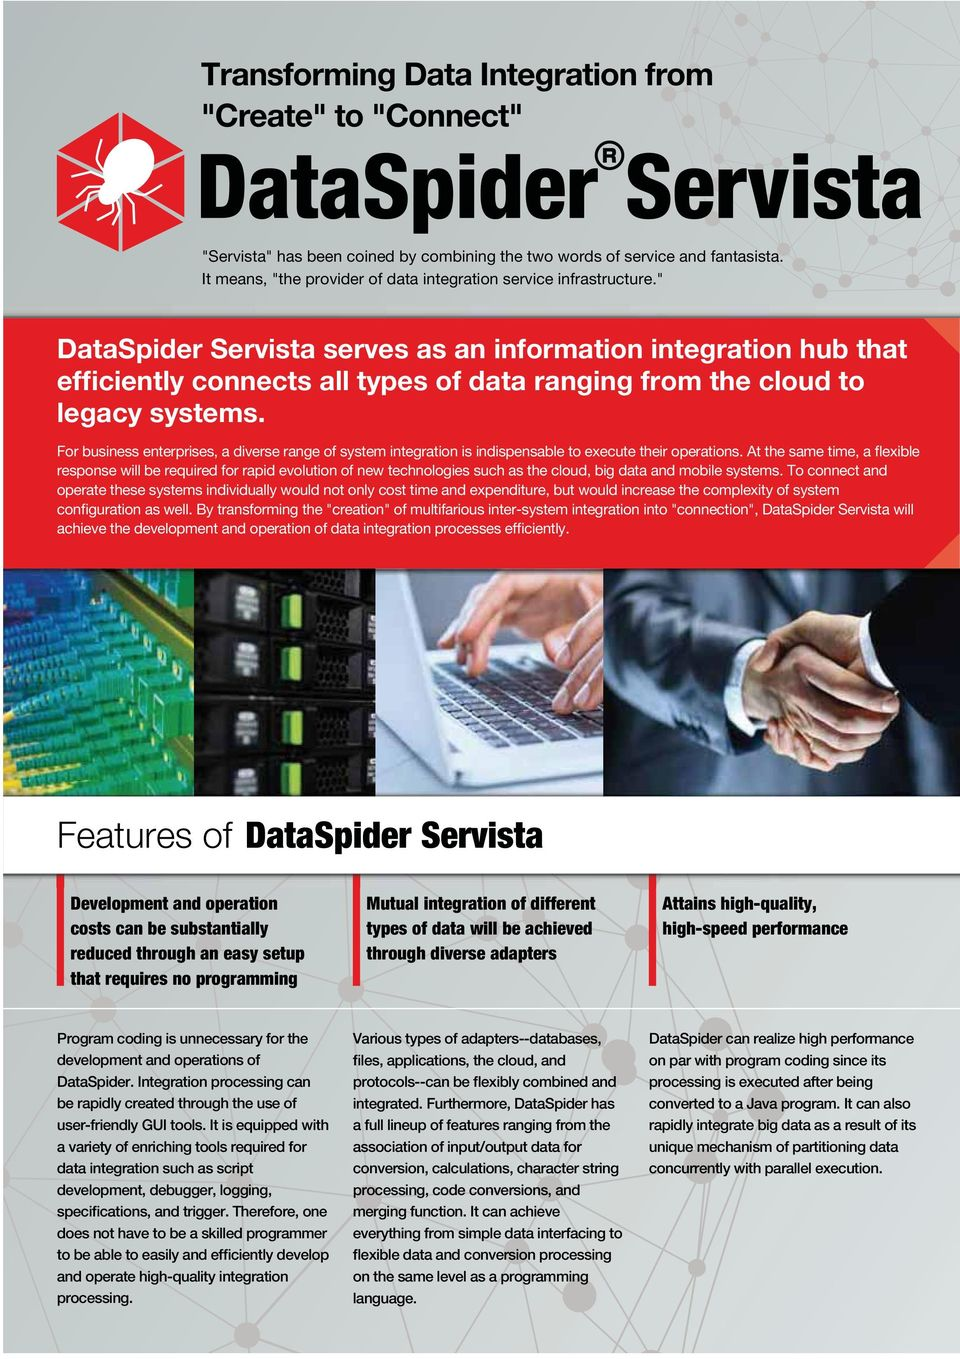 """ DataSpider Servista serves as an information integration hub that efficiently connects all types of data ranging from the cloud to legacy systems."